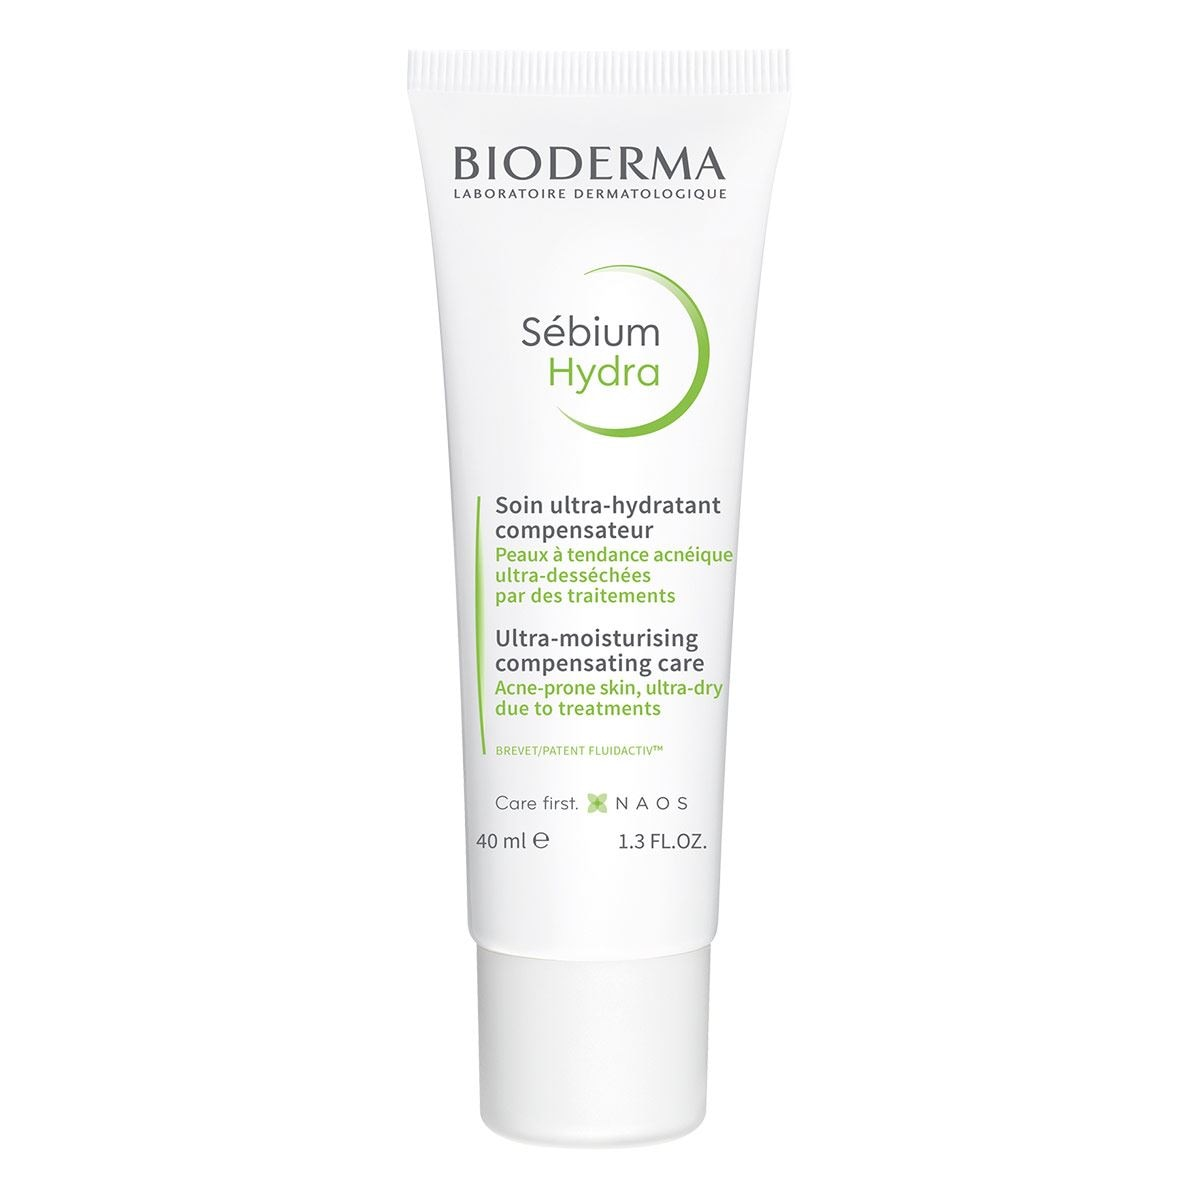 Sebium hydra 40 ml  - Sanborns